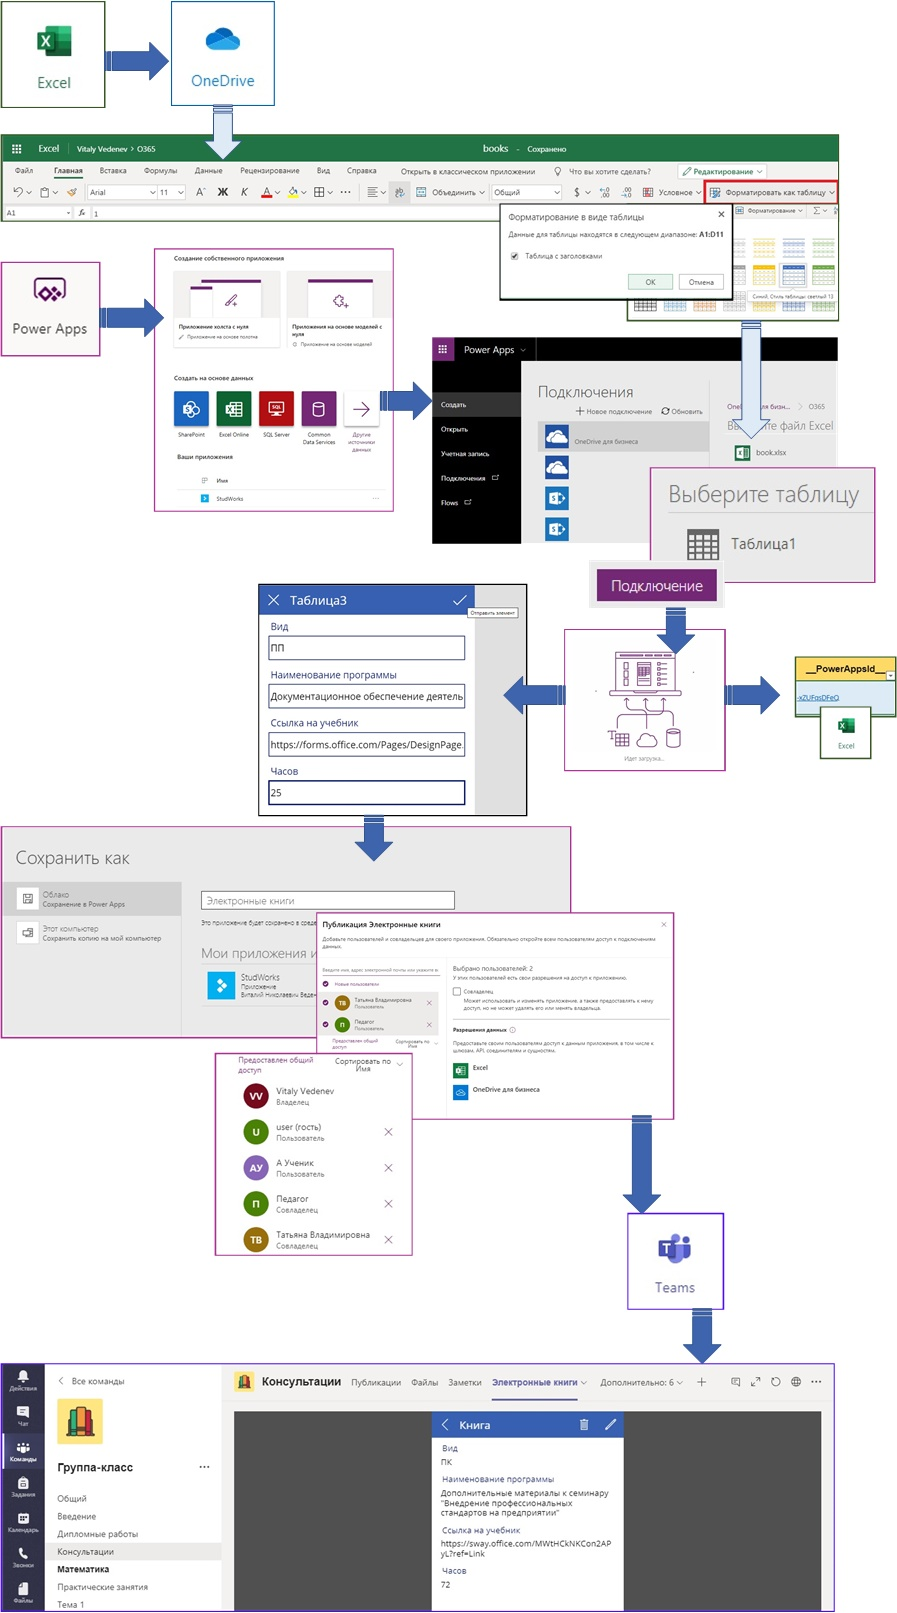 Схема создания приложения Microsoft Teams средствами Power Apps из файла Excel